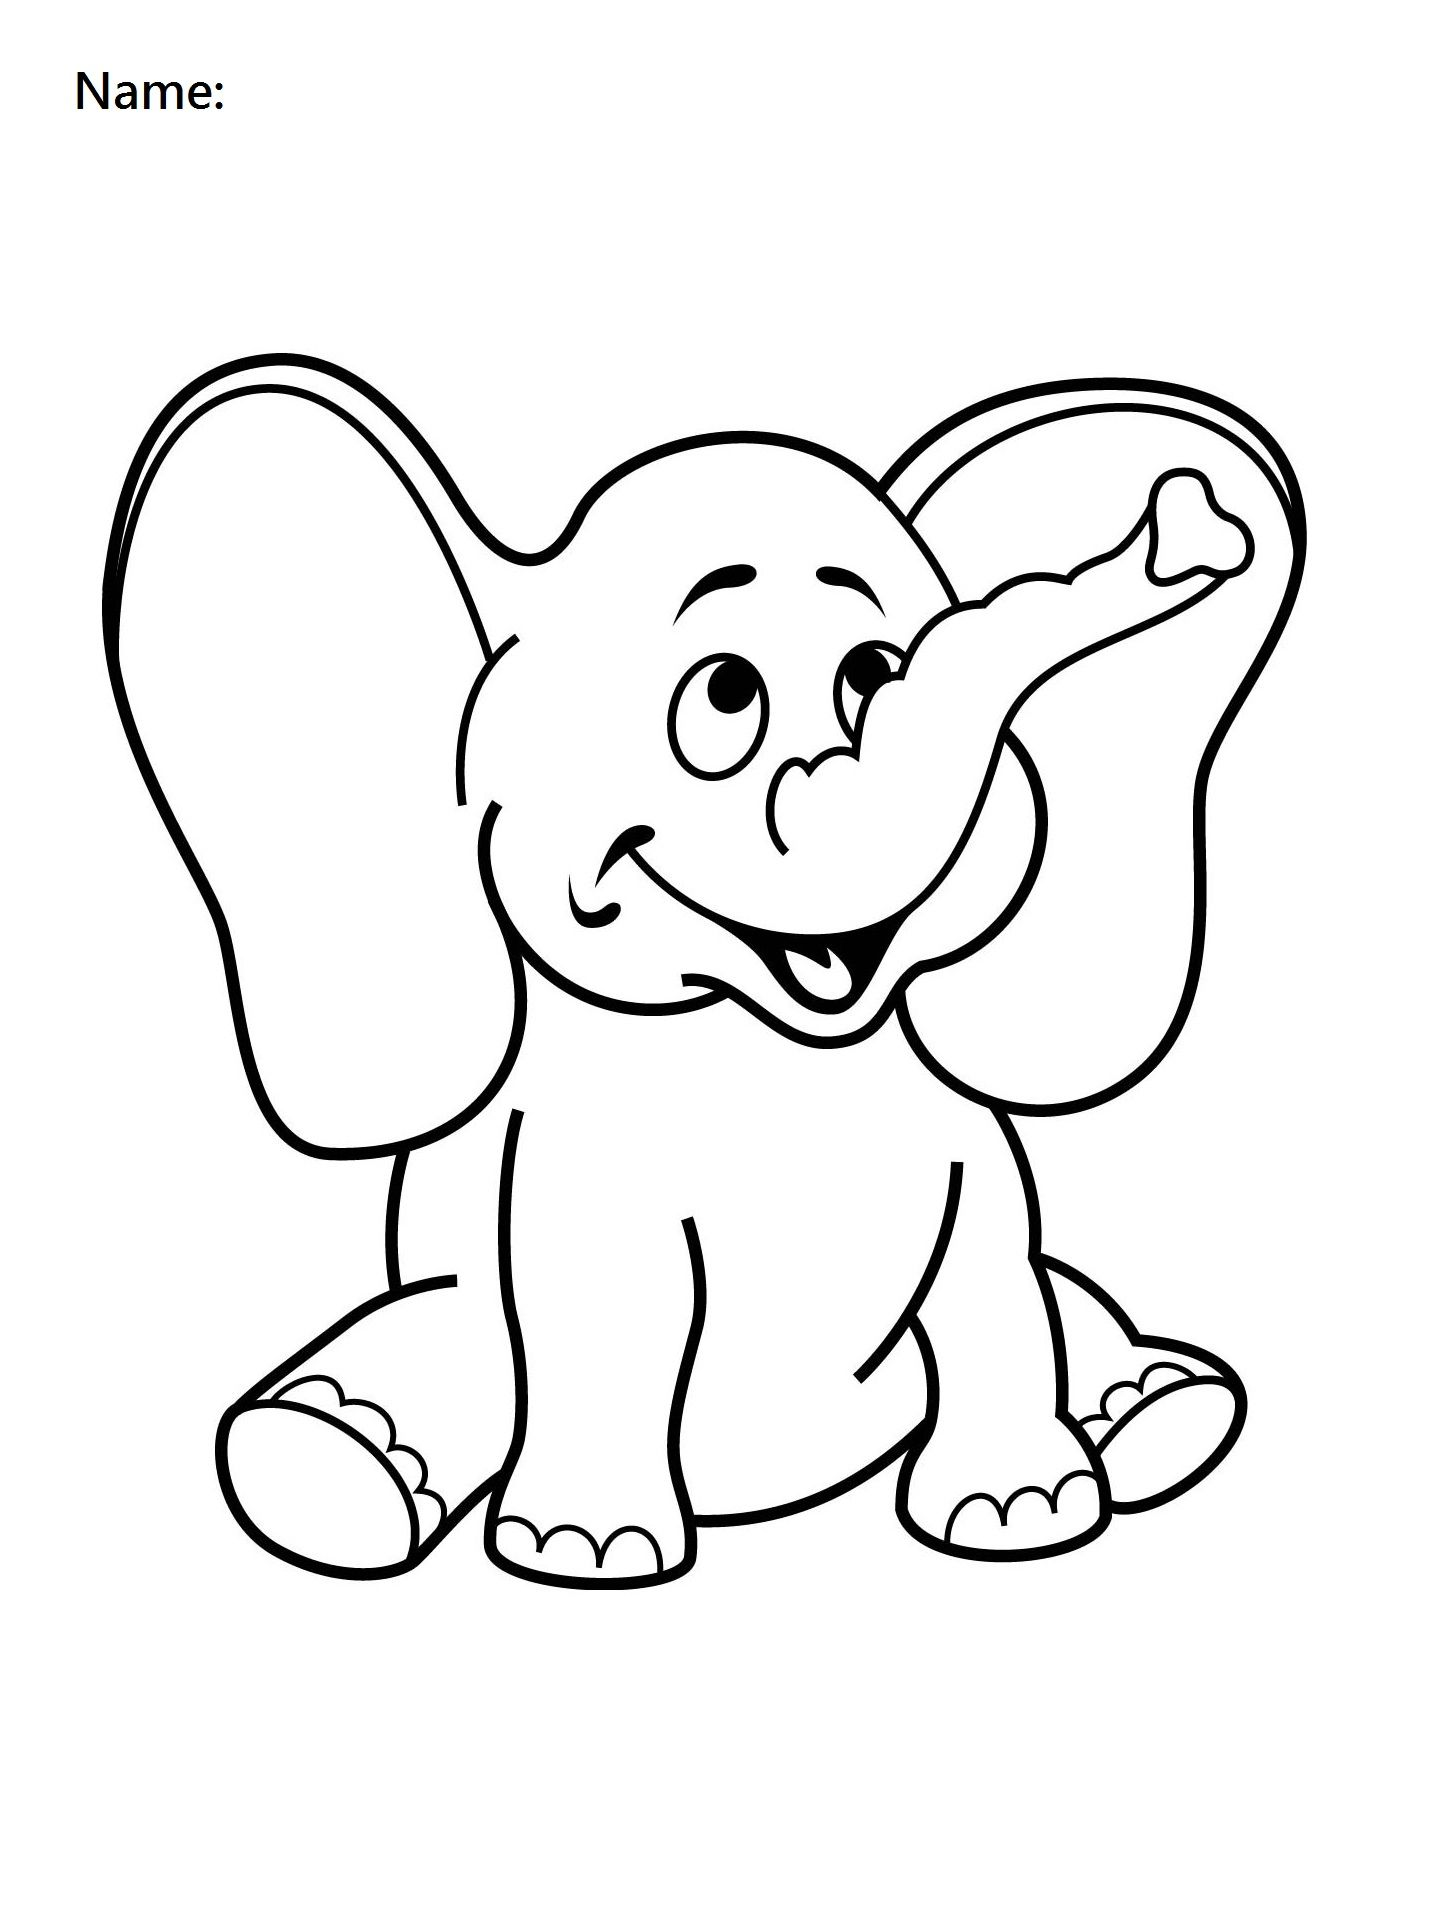 free coloring sheets for 3 year olds coloring pages for 3 year olds free download best year coloring olds 3 sheets for free